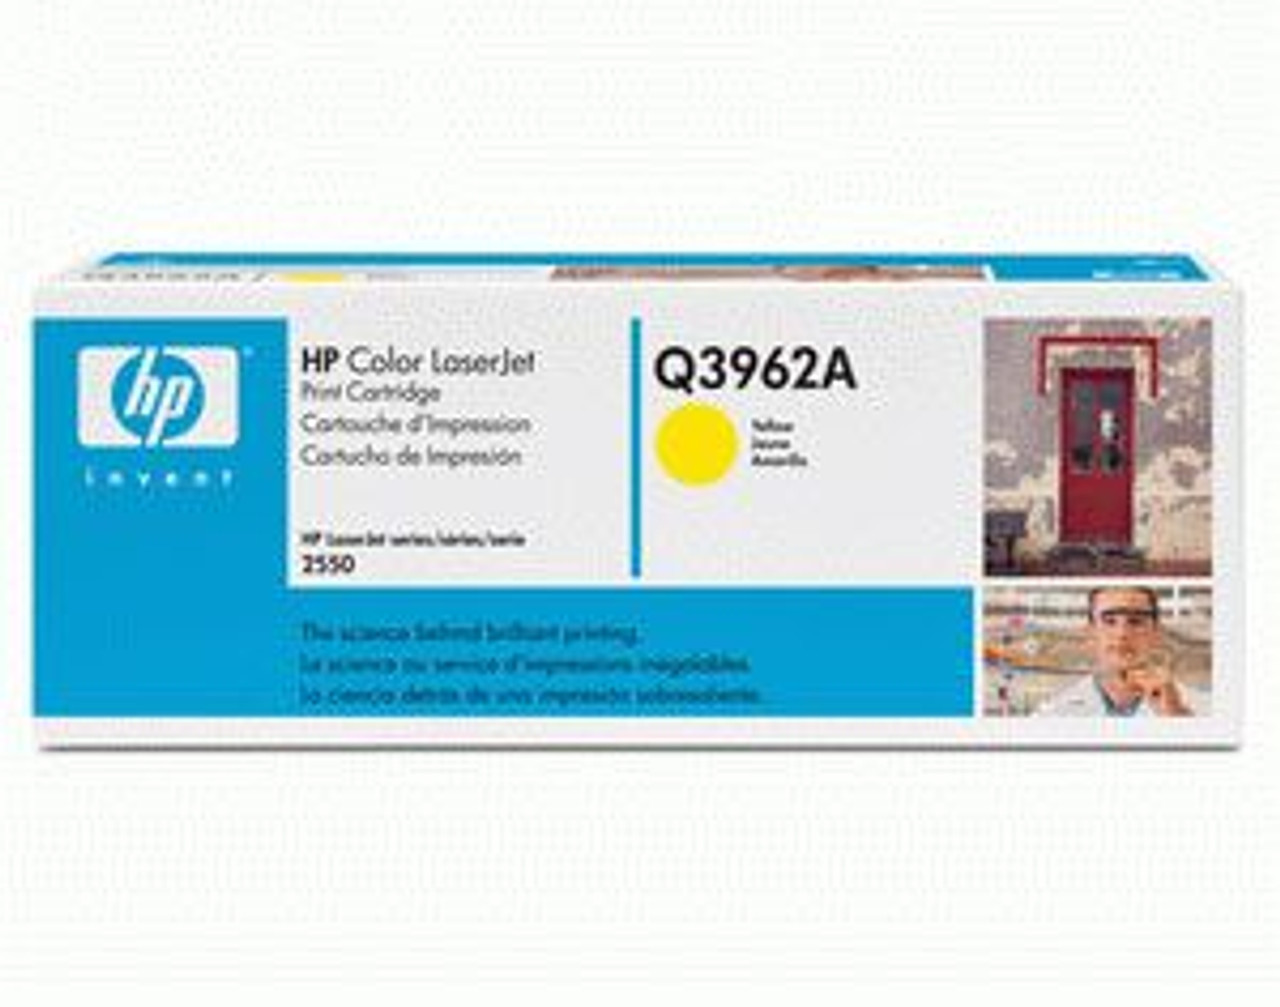 Image for HP High Capacity Yellow Toner 4K pages (Q3962A) CX Computer Superstore